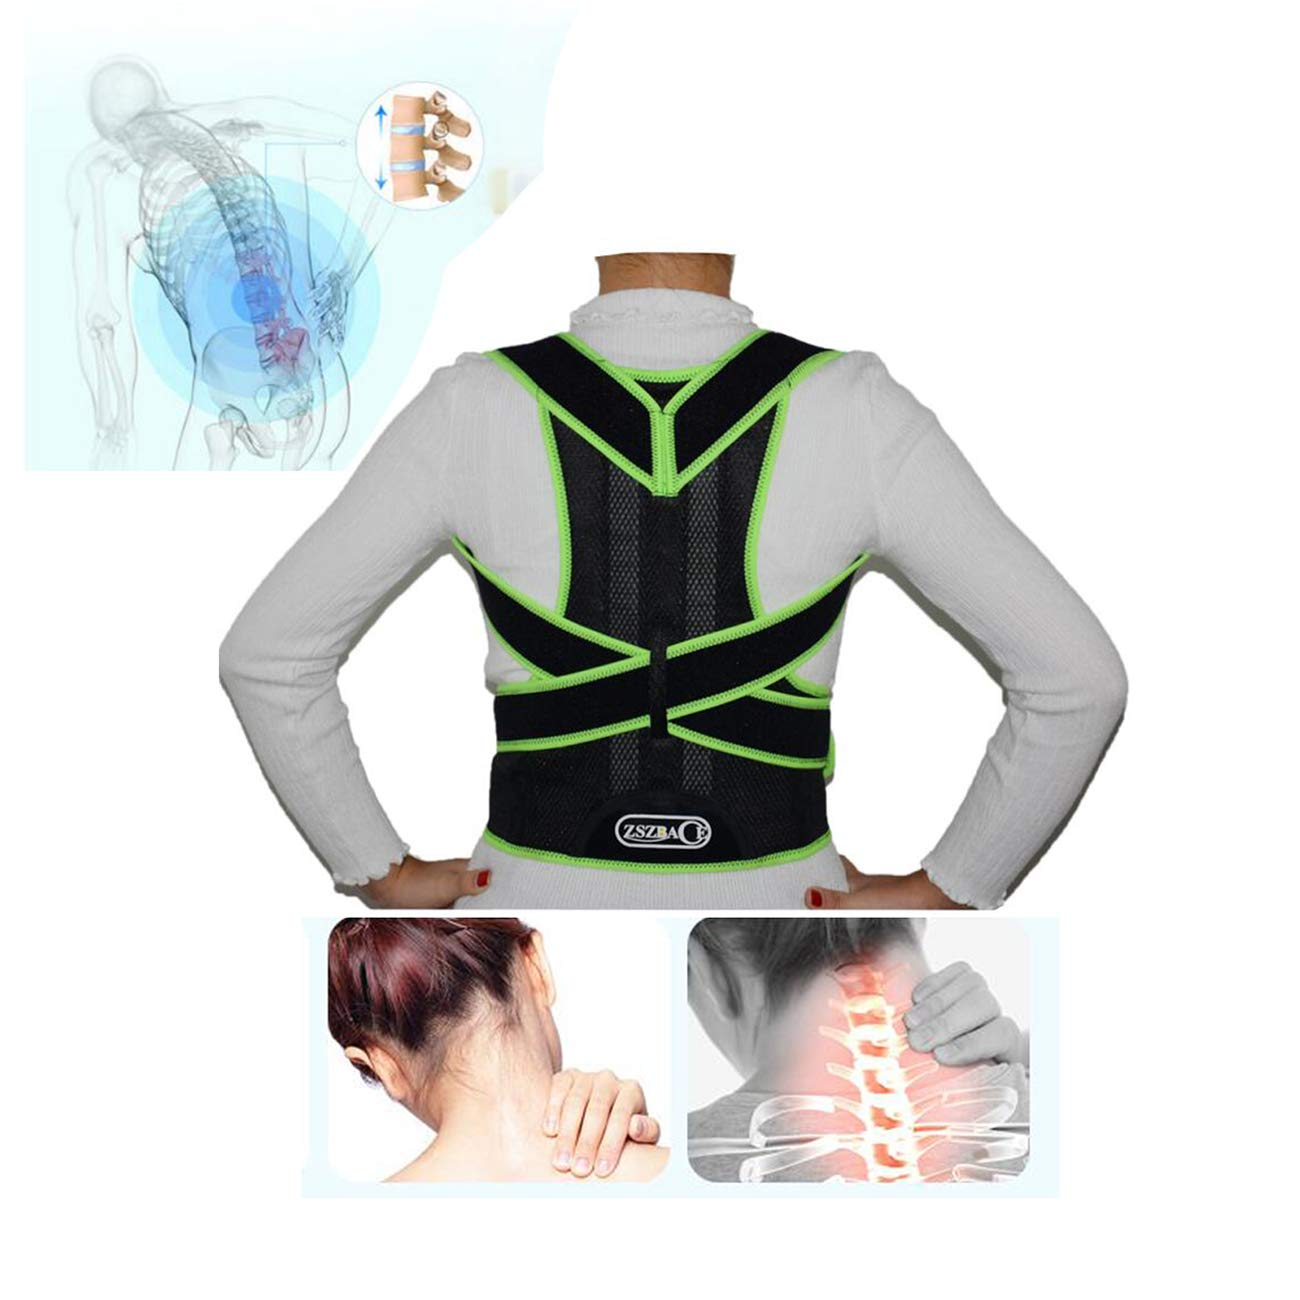 Back Posture Back Correction Belt,Back Support,Back Orthopedic Equipment, Hunchback Corrector, Lower Back Support to Relieve Back Pain. (Medium) by ZSZBACE